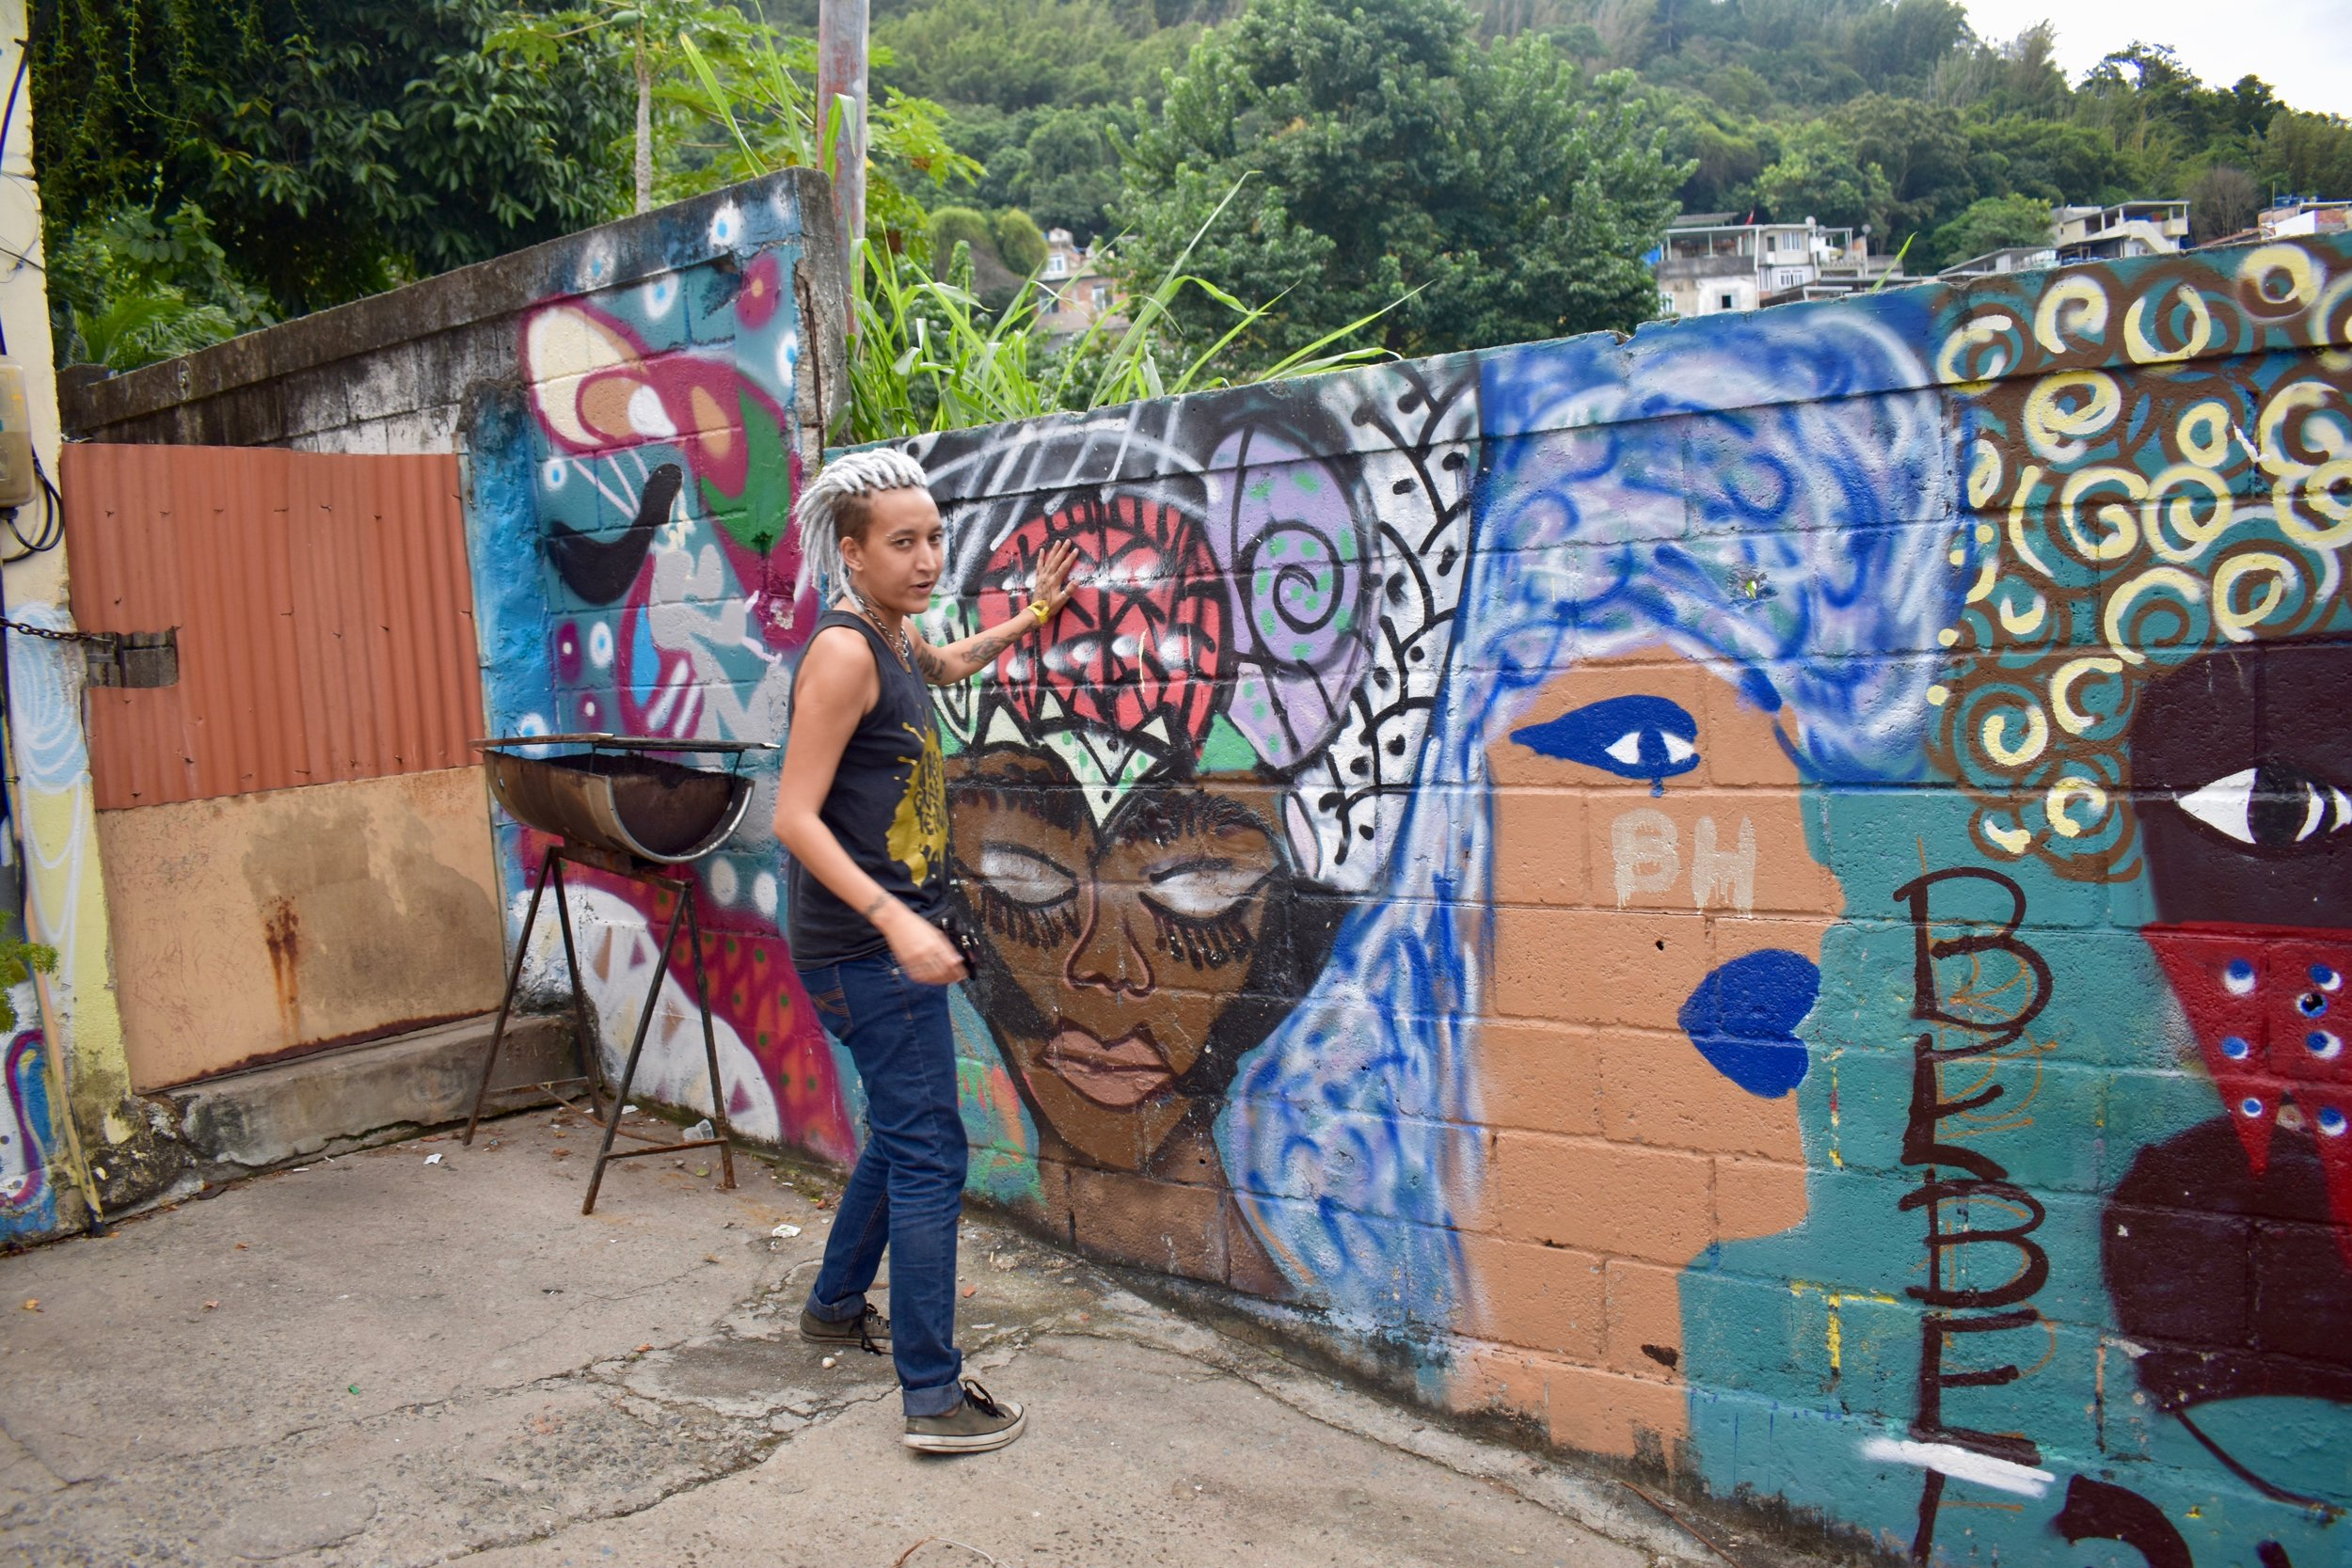 J.Lo explaining a Redi Nami mural. (Courtsey of Tess Thomas / Malala Fund)